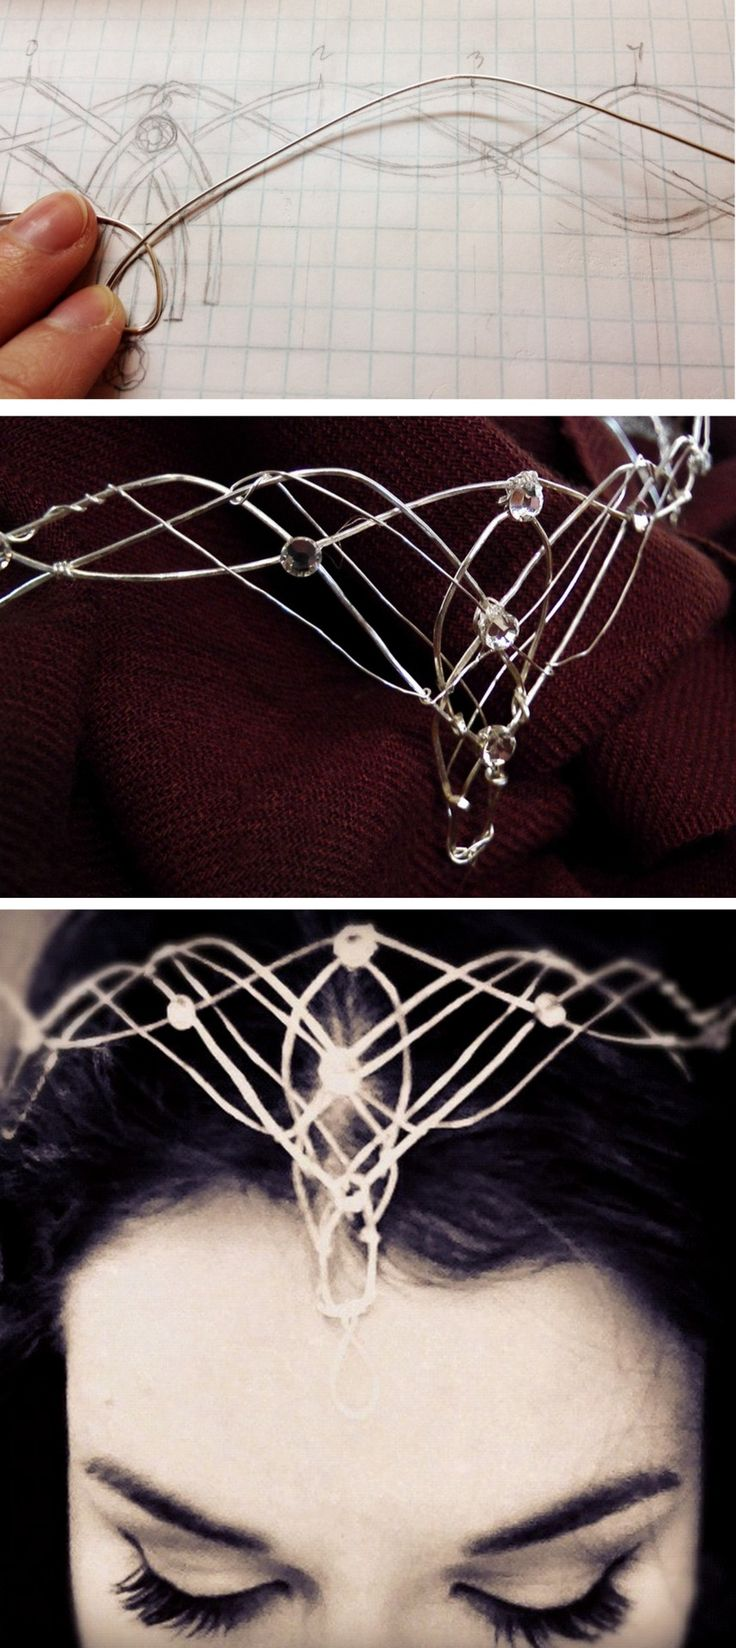 DIY Elvish Crown Tutorial from Rachel Ann Poling. This is a 2 part tutorial for making this wirework DIY Elvish Crown. Part 1 - the design phase - is here. After doing wirework myself and posting hundreds of wire DIYs on truebluemeandyou, what I found most interesting about this tutorial were the mistakes made and how they were fixed. If you are interested in making Cosplay wire accessories, I would definitely look into this 4 part series: Everything You Need to Know About Jewelry Wire...